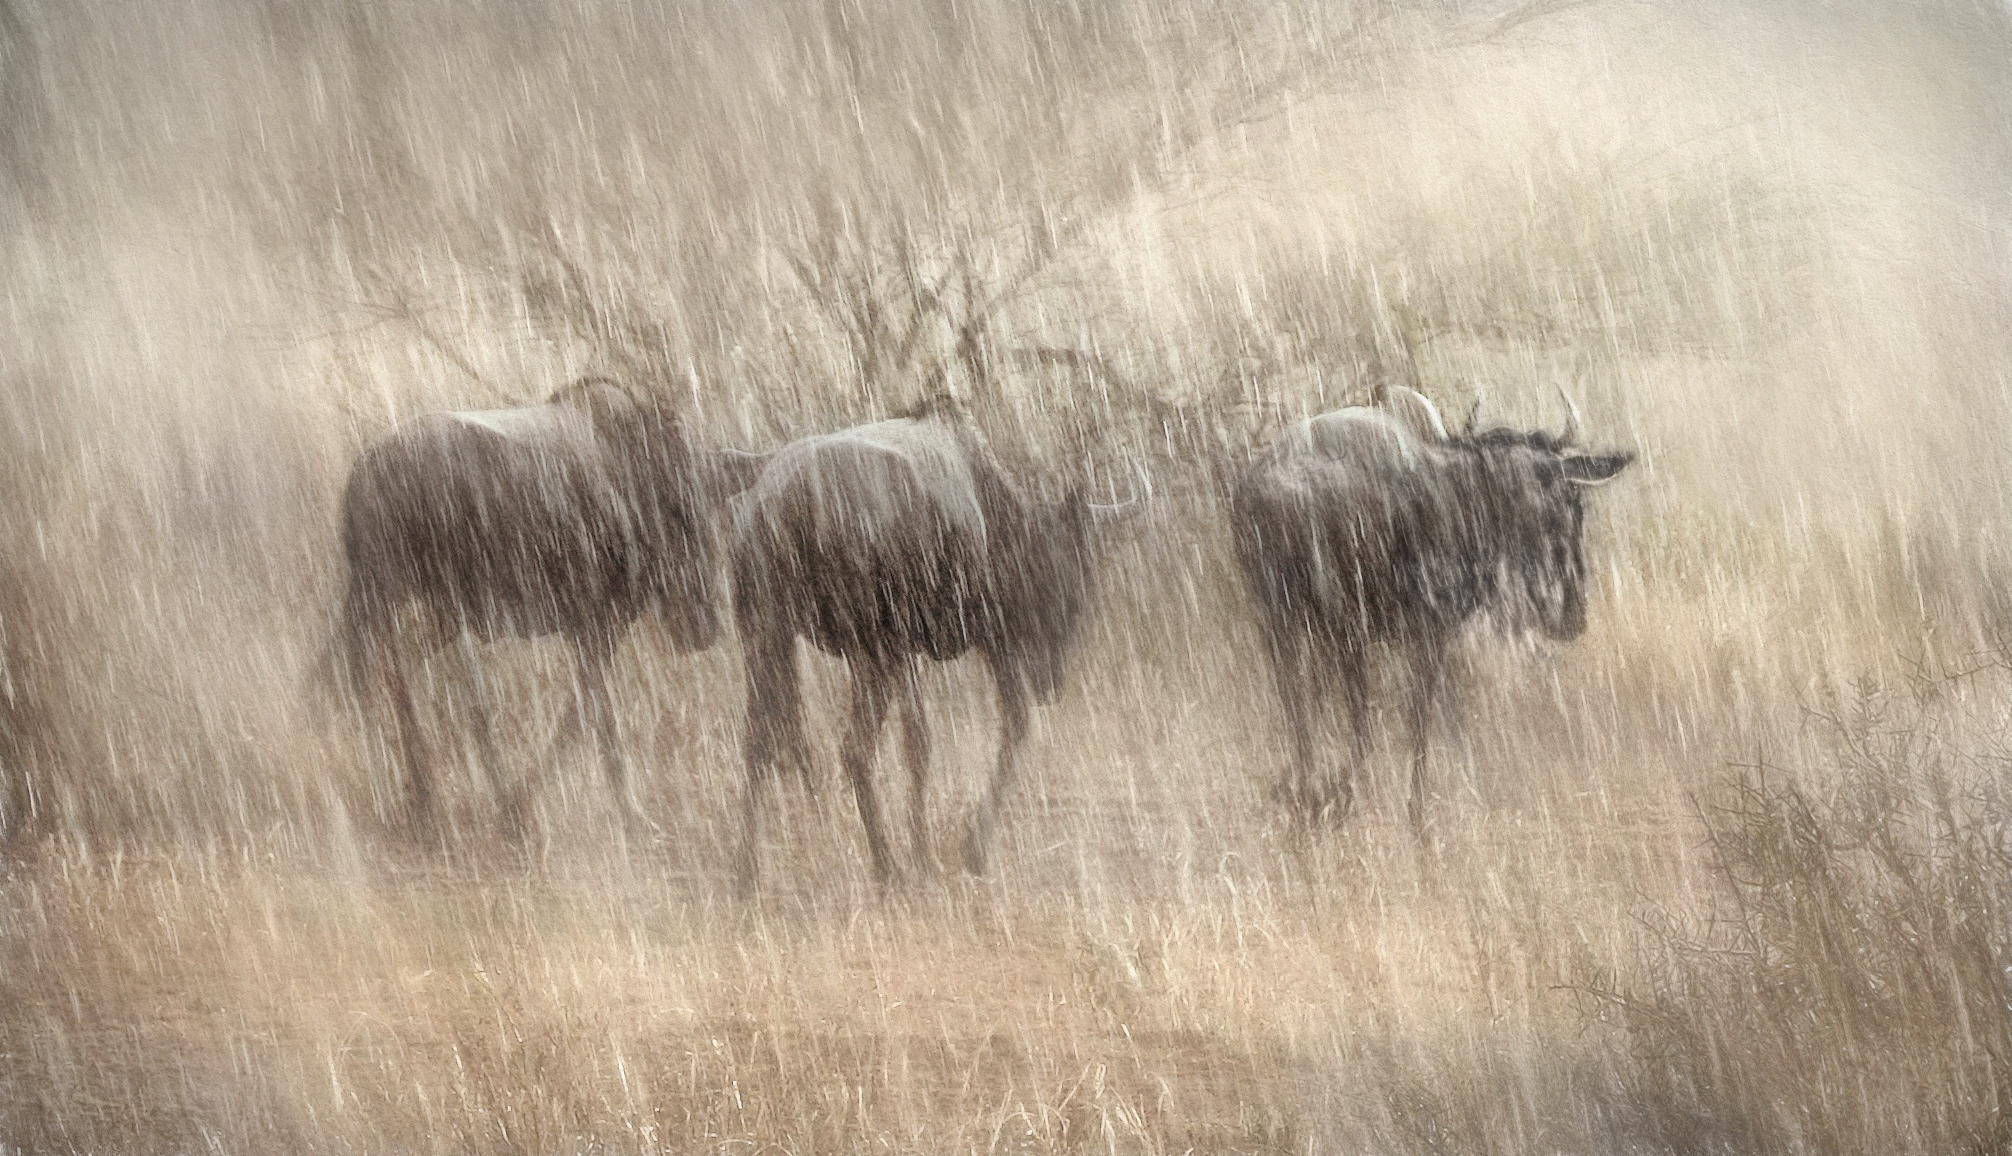 wildebeest in rain